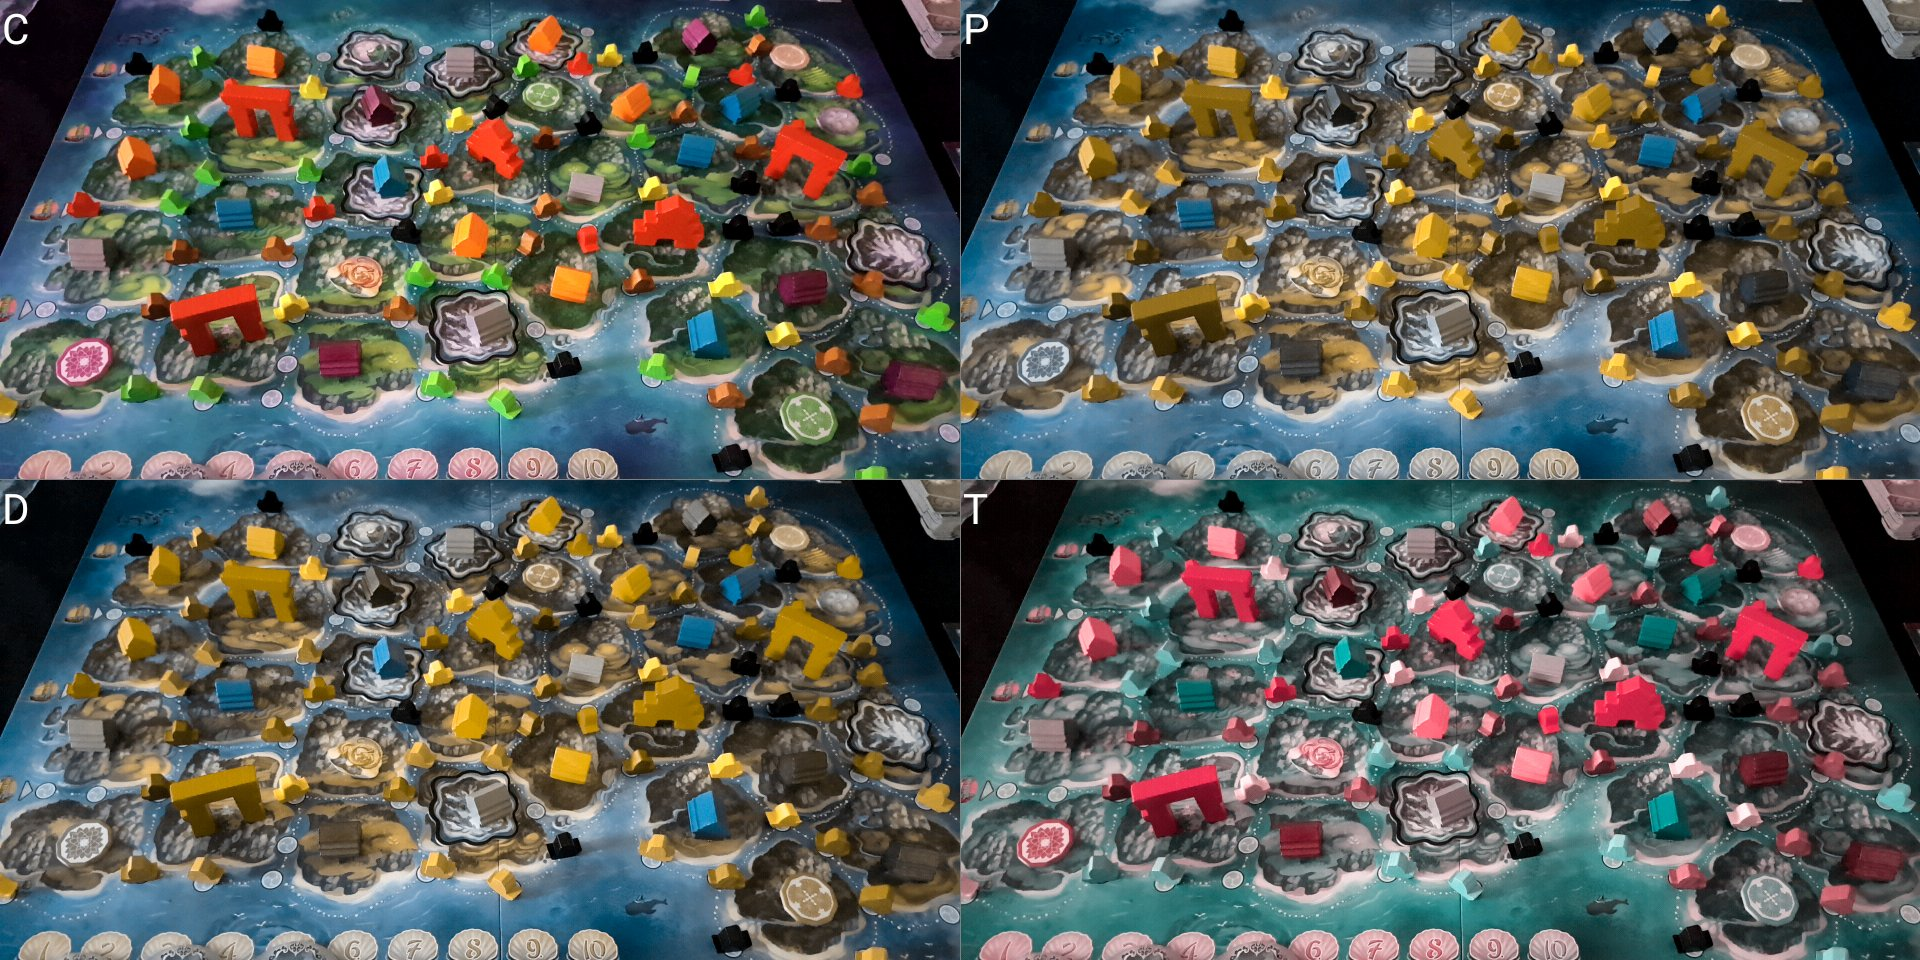 Comparison of Yamatai for varying color blindness